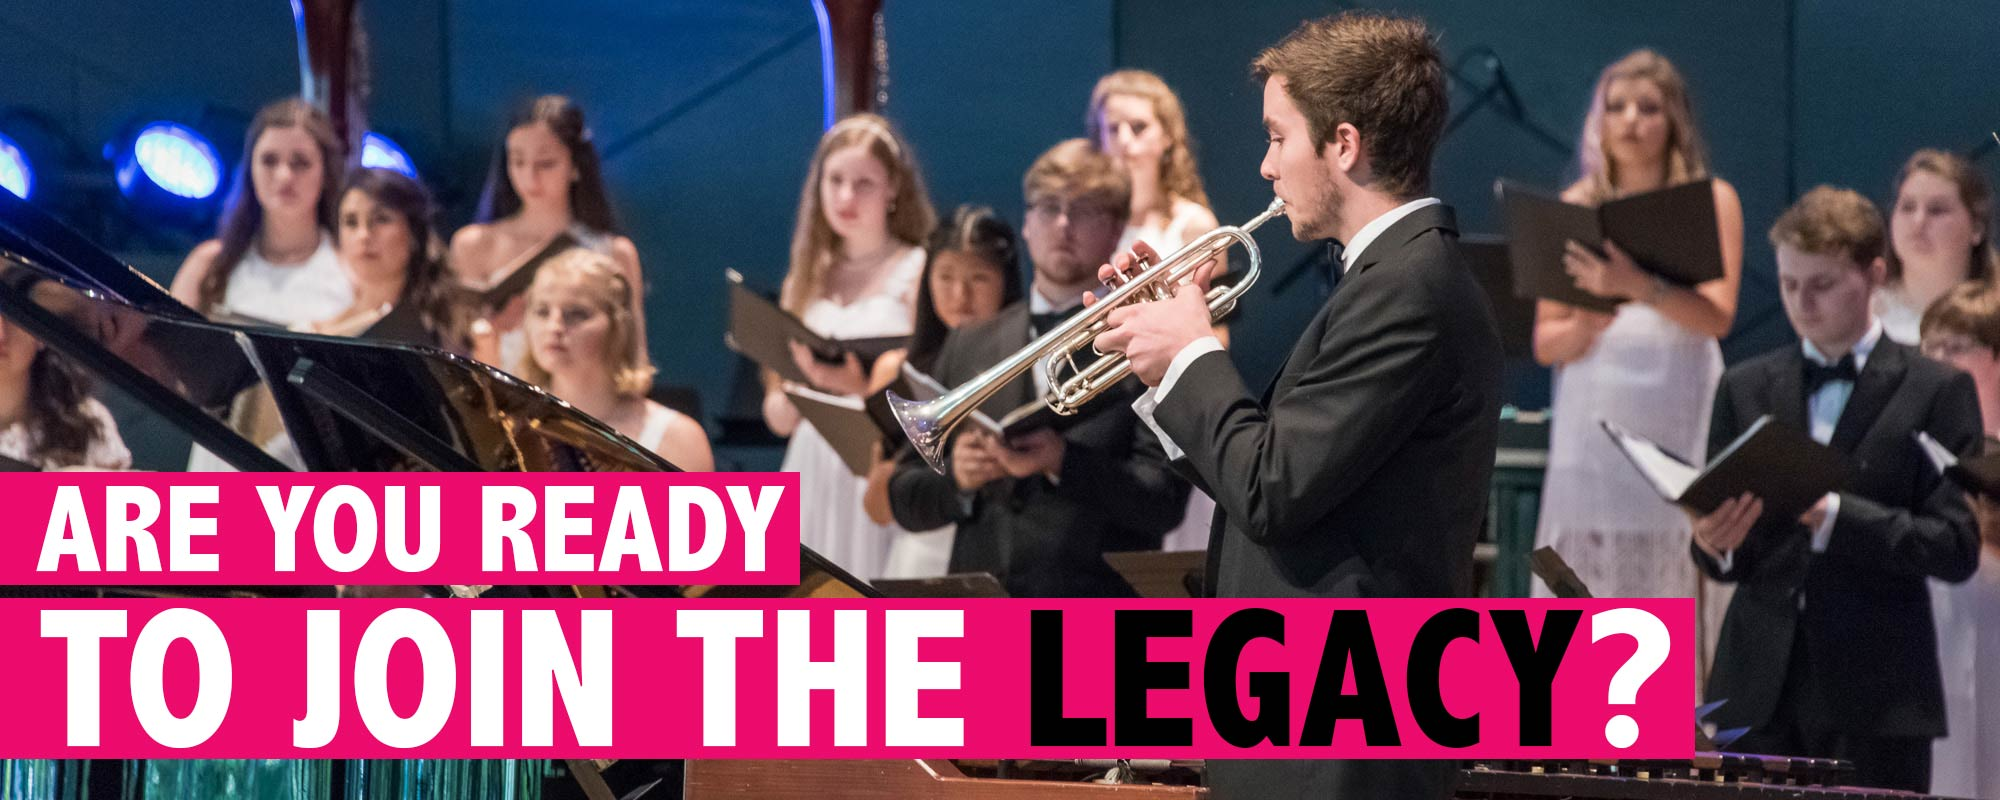 Are you ready to join the legacy? Apply and audition.